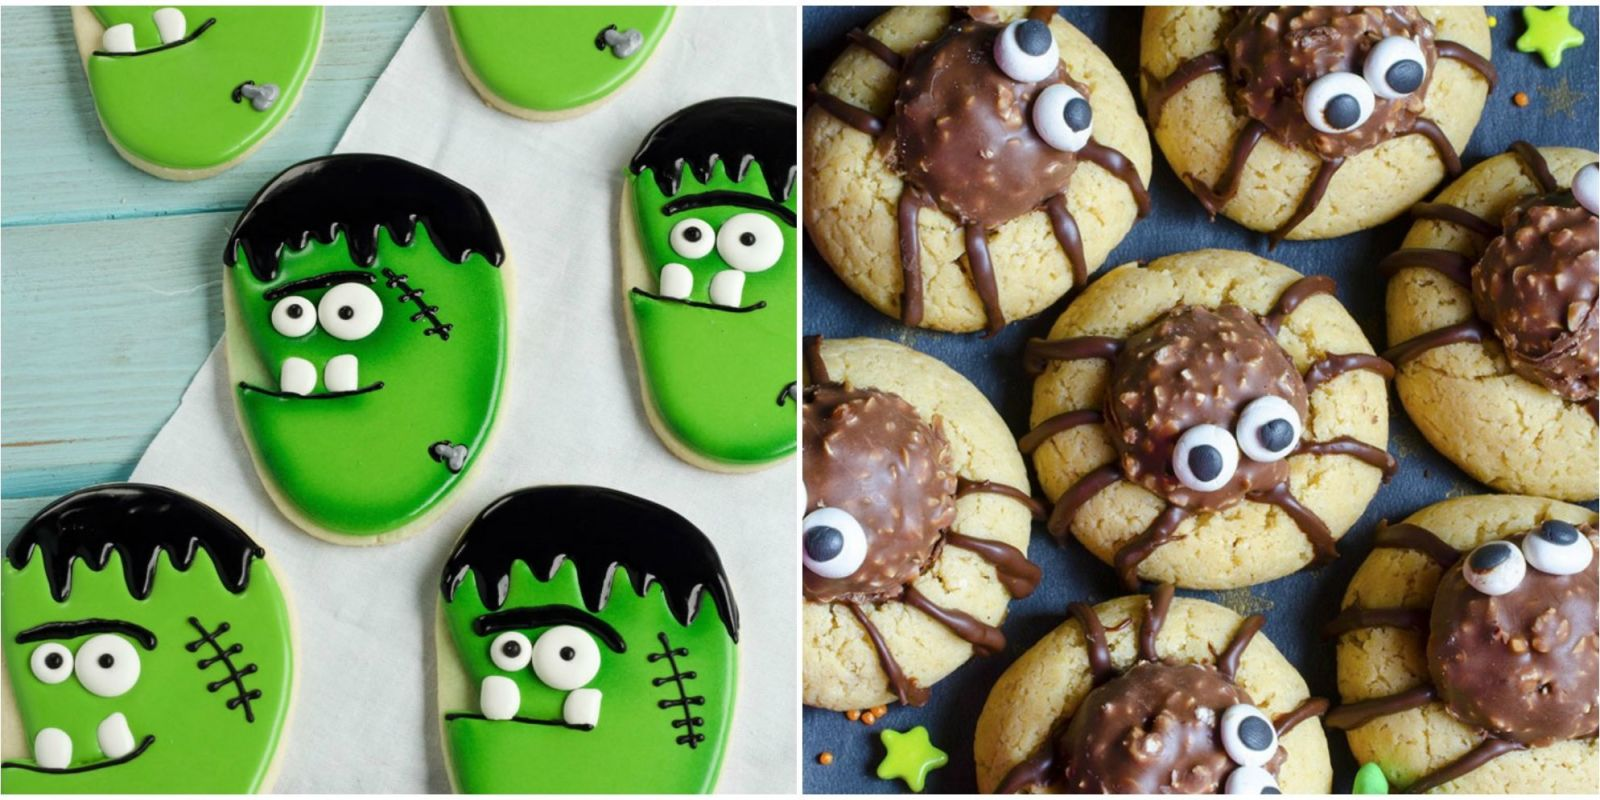 26 Homemade Halloween Cookie Ideas - Recipes & Decorating Tips for ...